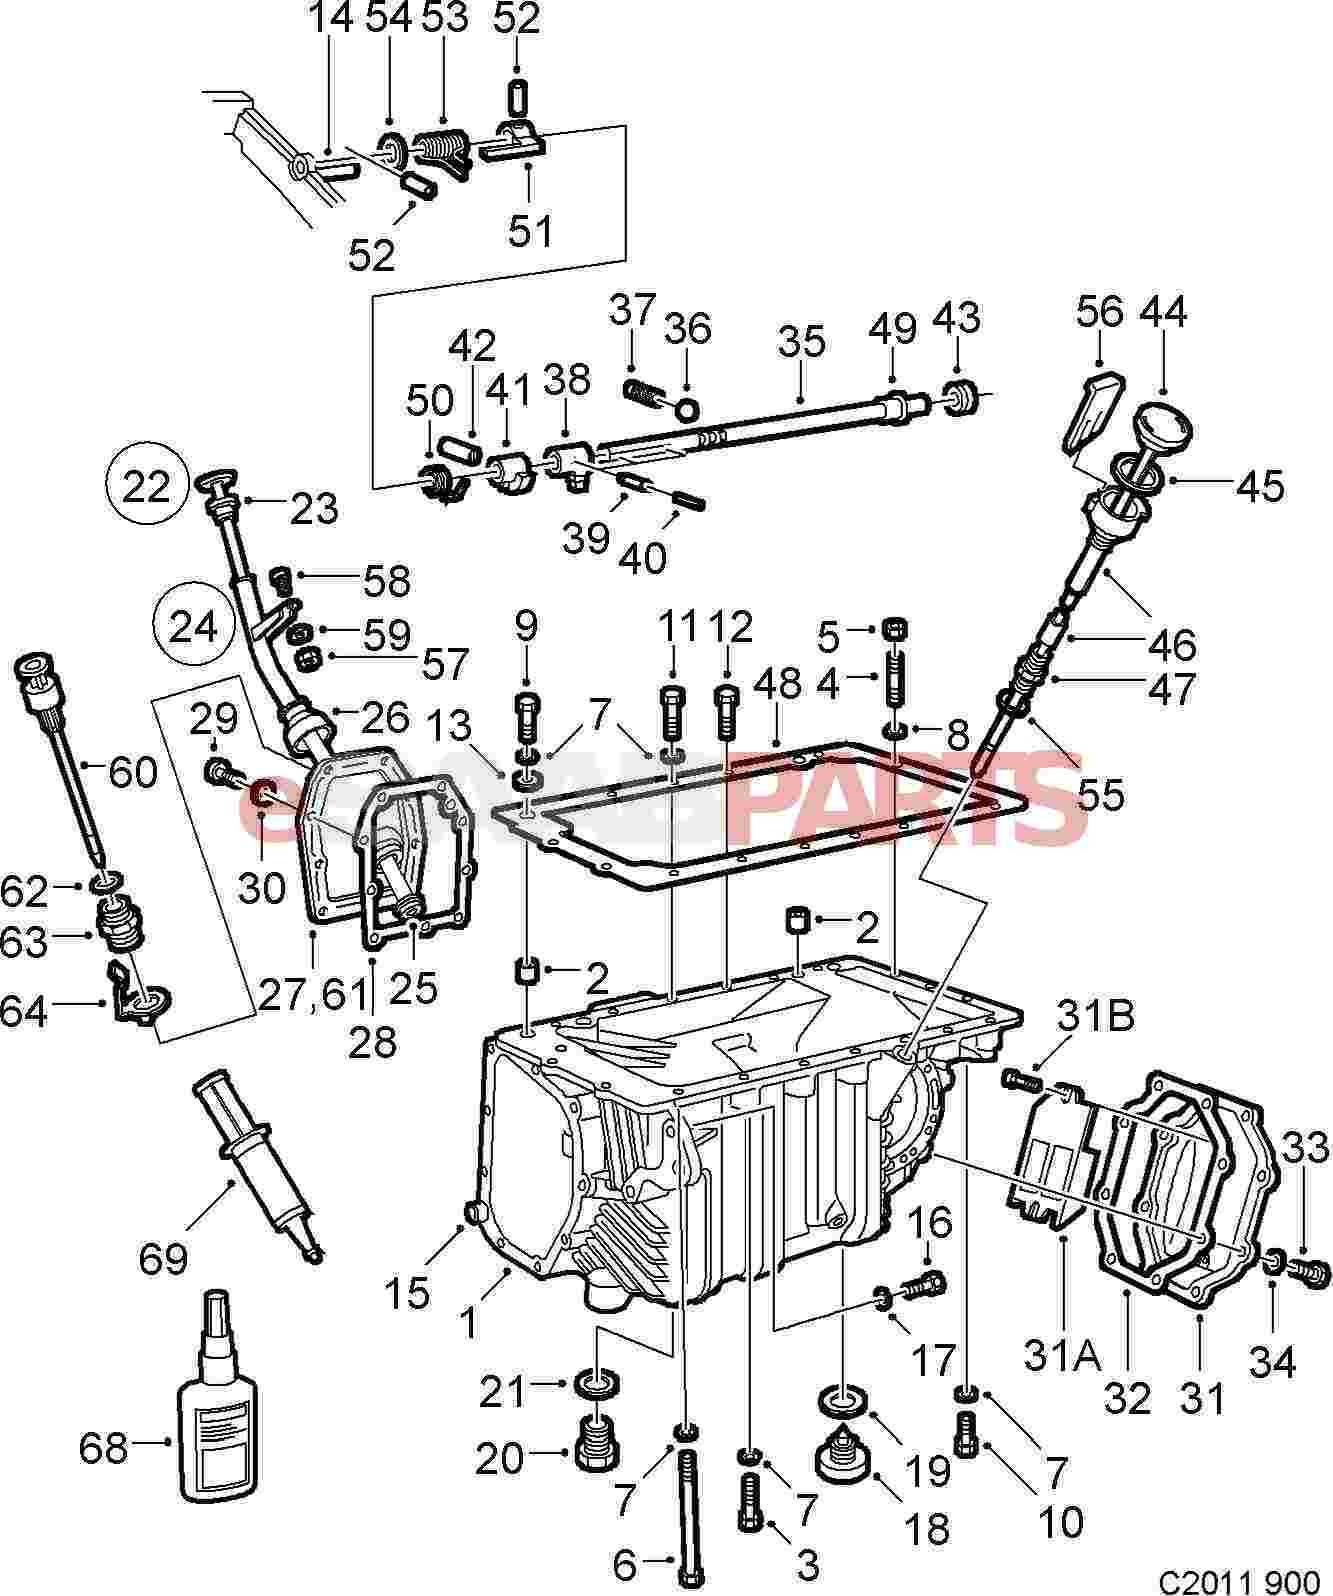 Manual gearbox diagram my wiring diagram rh detoxicrecenze saab 900 automatic transmission saab 900 manual